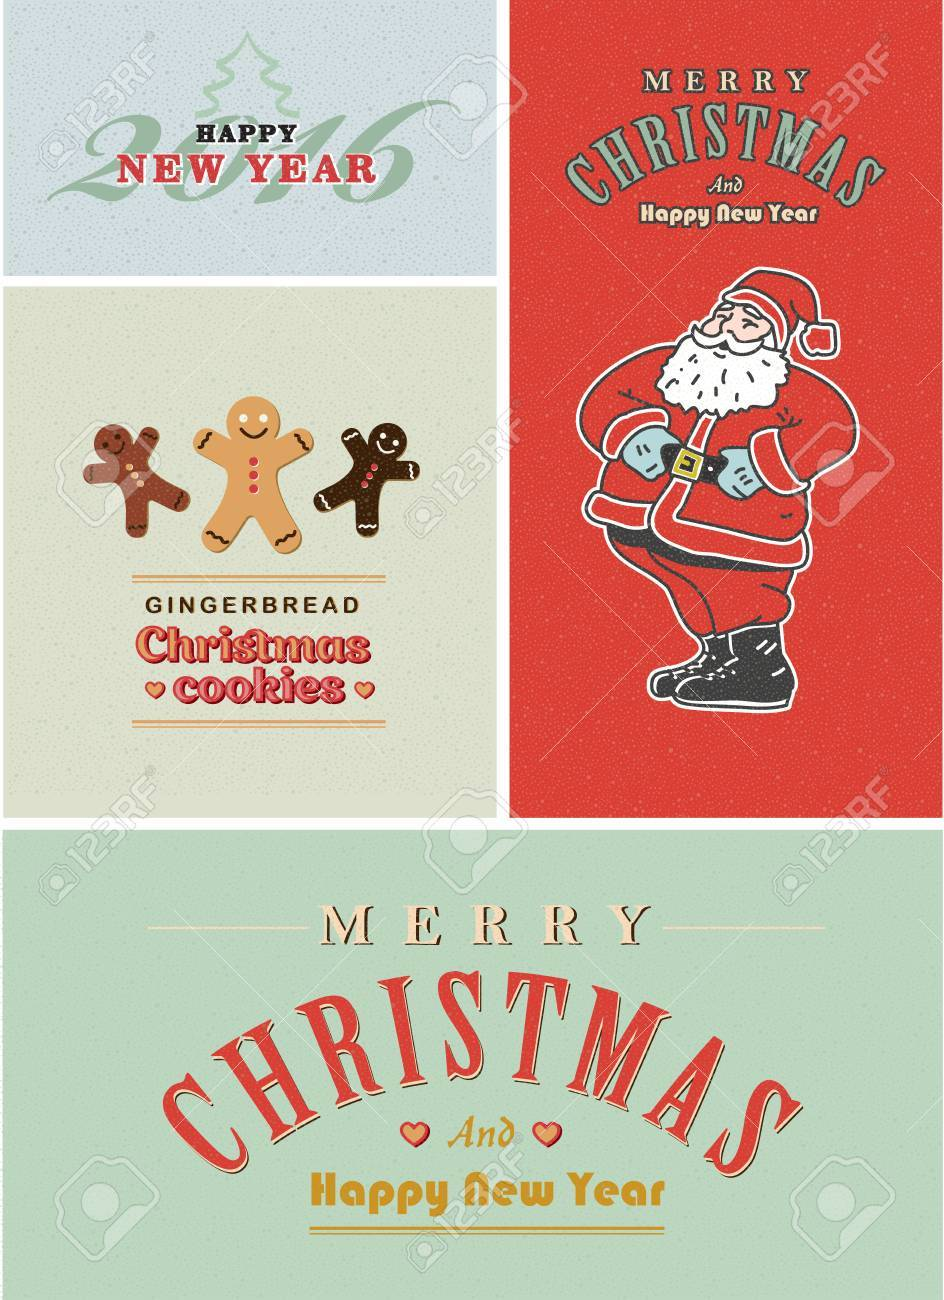 vector vintage retro christmas card set old fashioned santa claus gingerbread and old style lettering